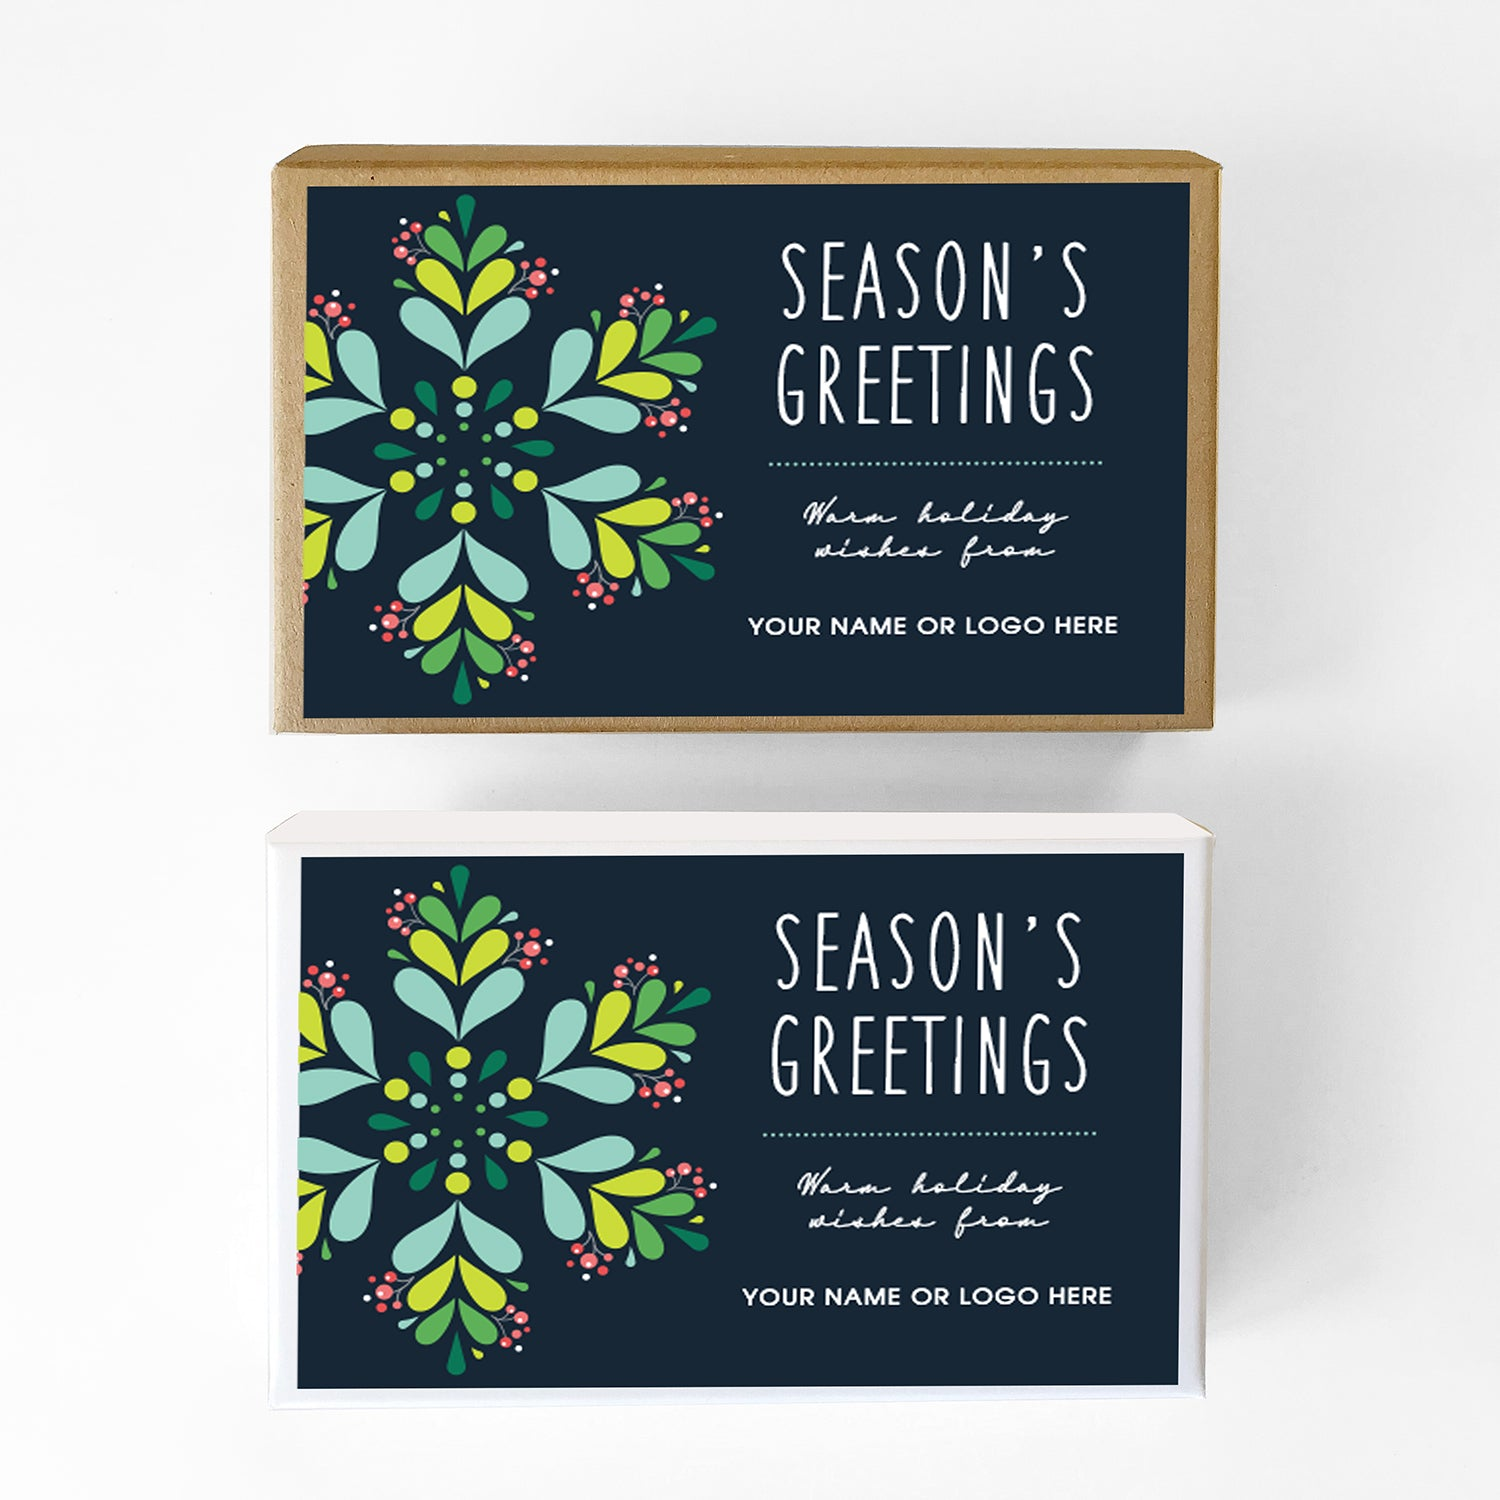 Cool Blue Seasons Greetings Caramel Gift Box Sampler